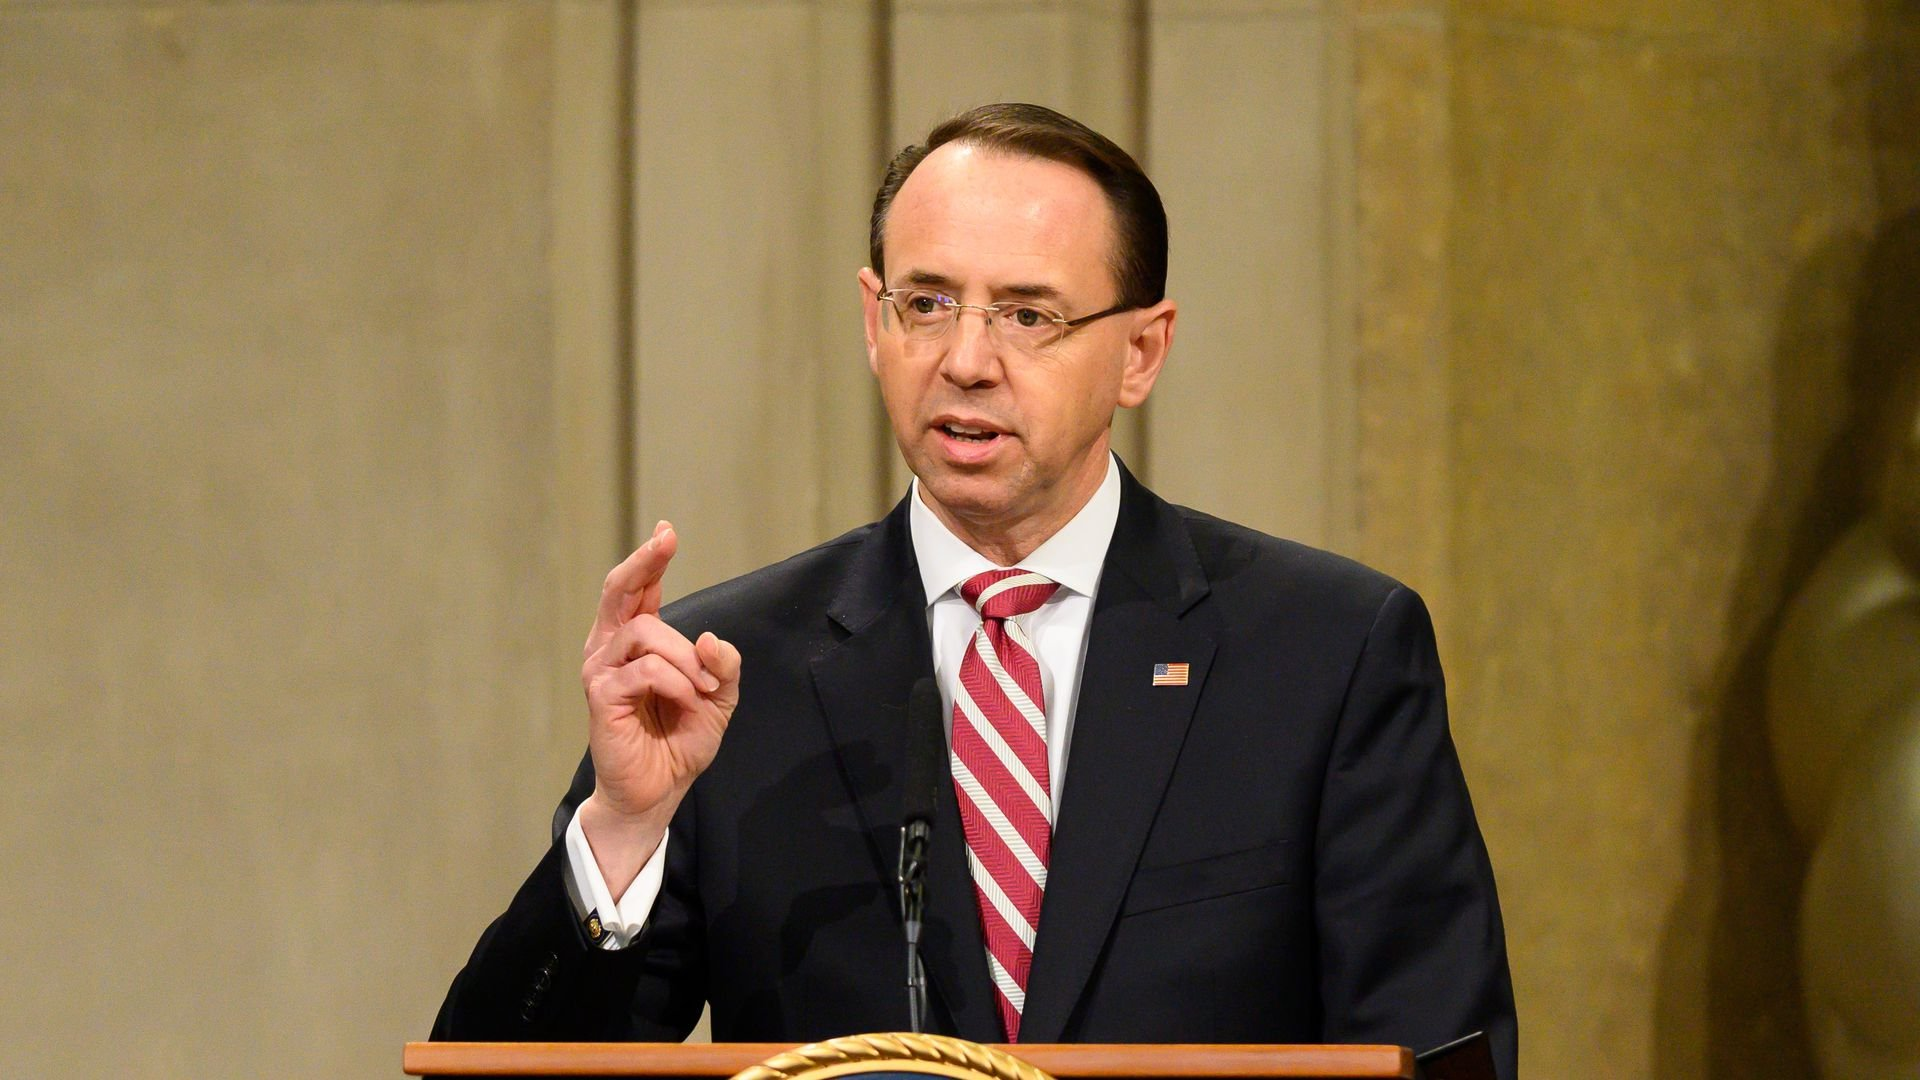 Rosenstein is out. Who would be the best possible replacement?